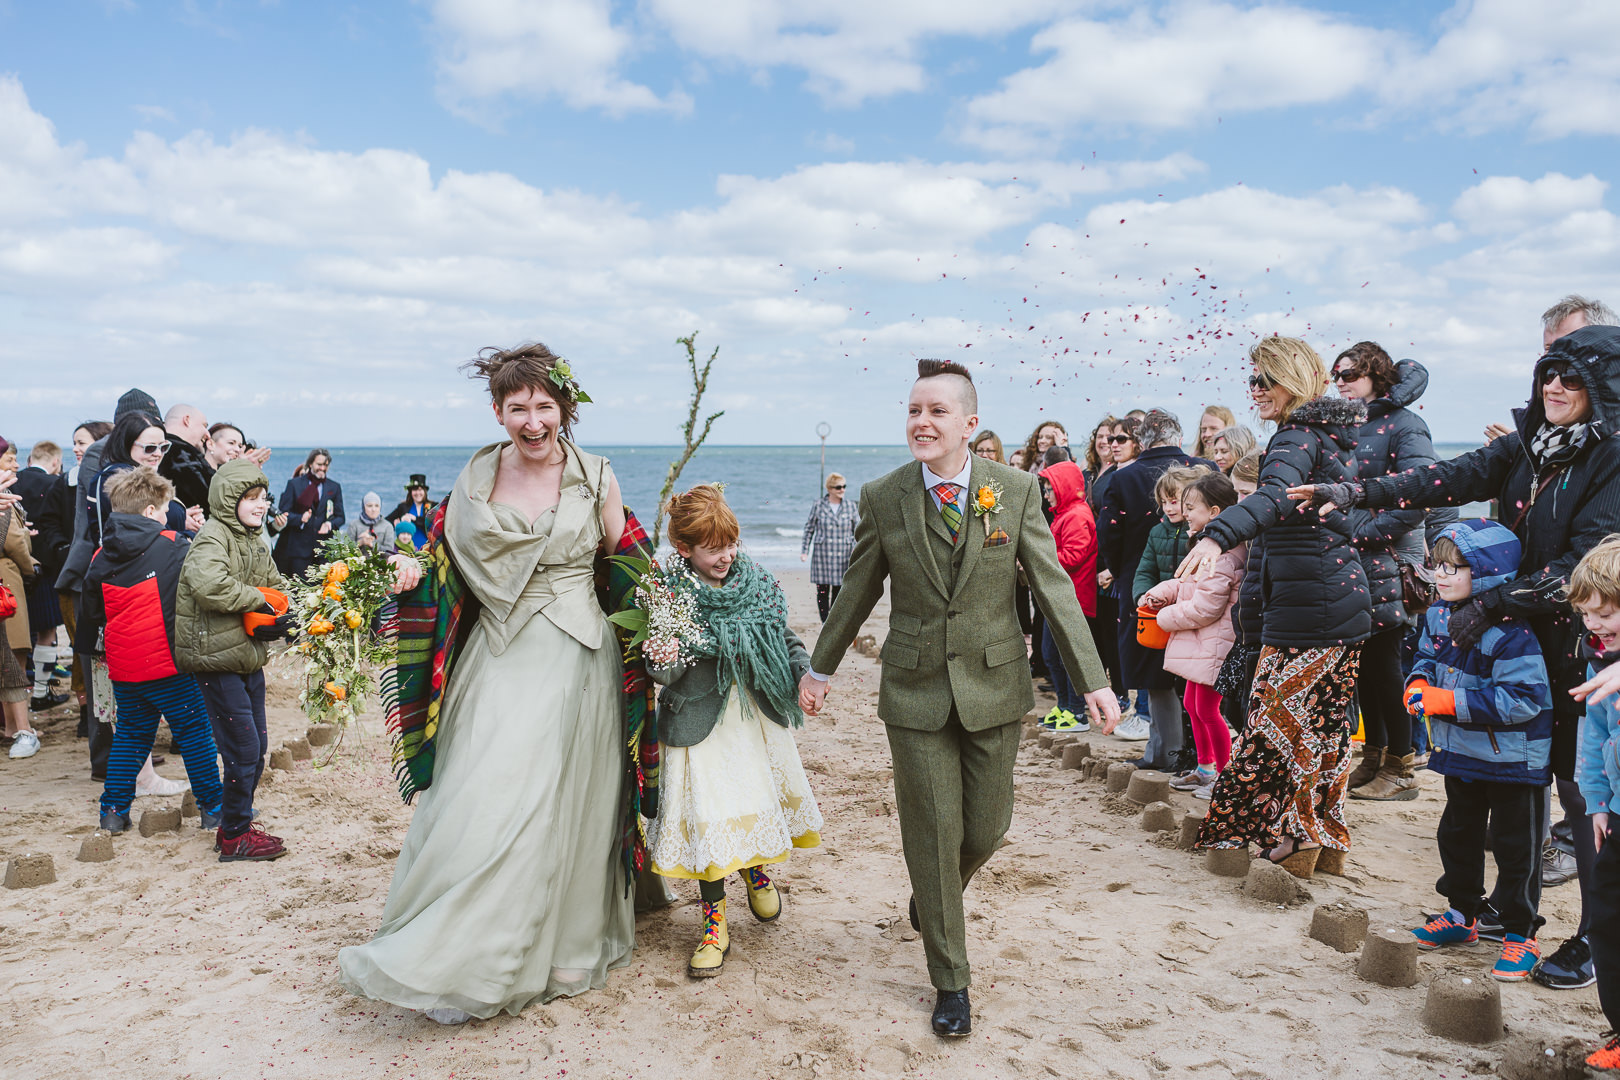 Portobello Beach Wedding - From my best wedding photos from 2019